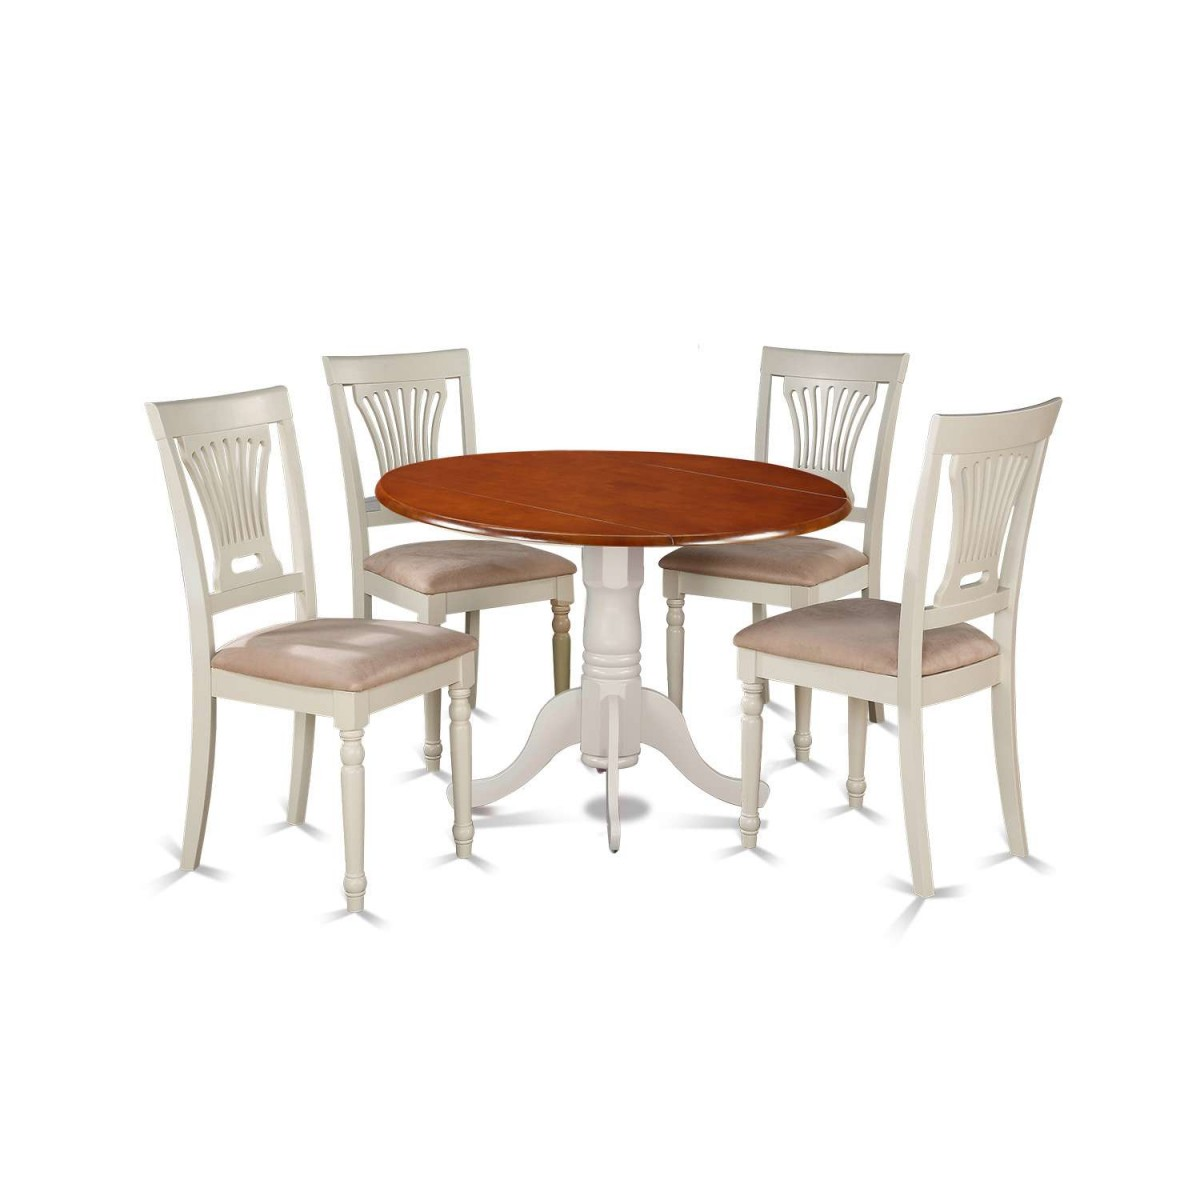 East West Furniture Dublin 5 Piece Small Kitchen Table Set